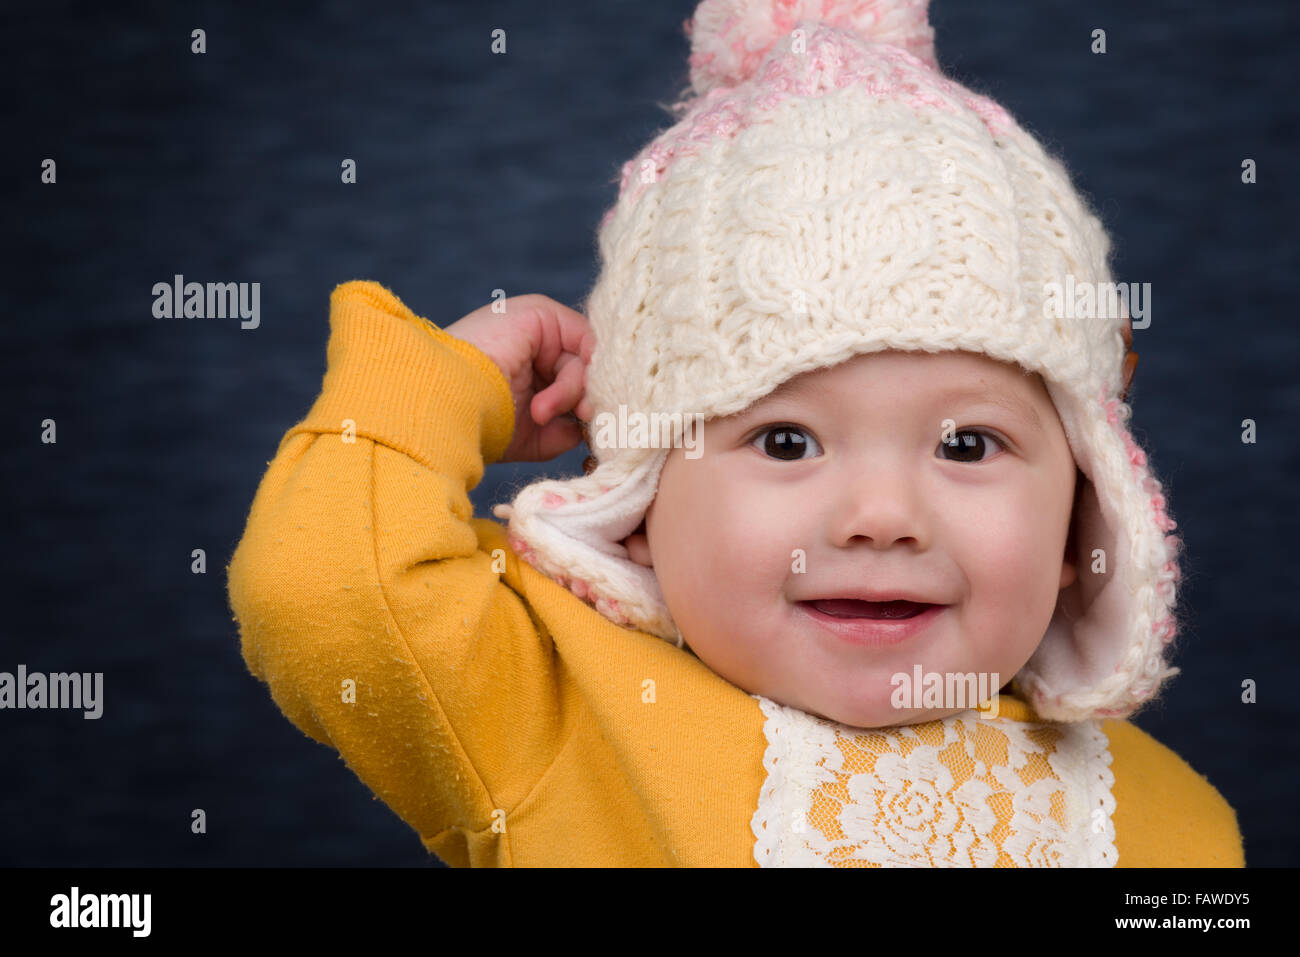 Beanie Baby Stock Photos Images Alamy Winter Hat Wh 94 A Smiling Girl Wearing Knit Image